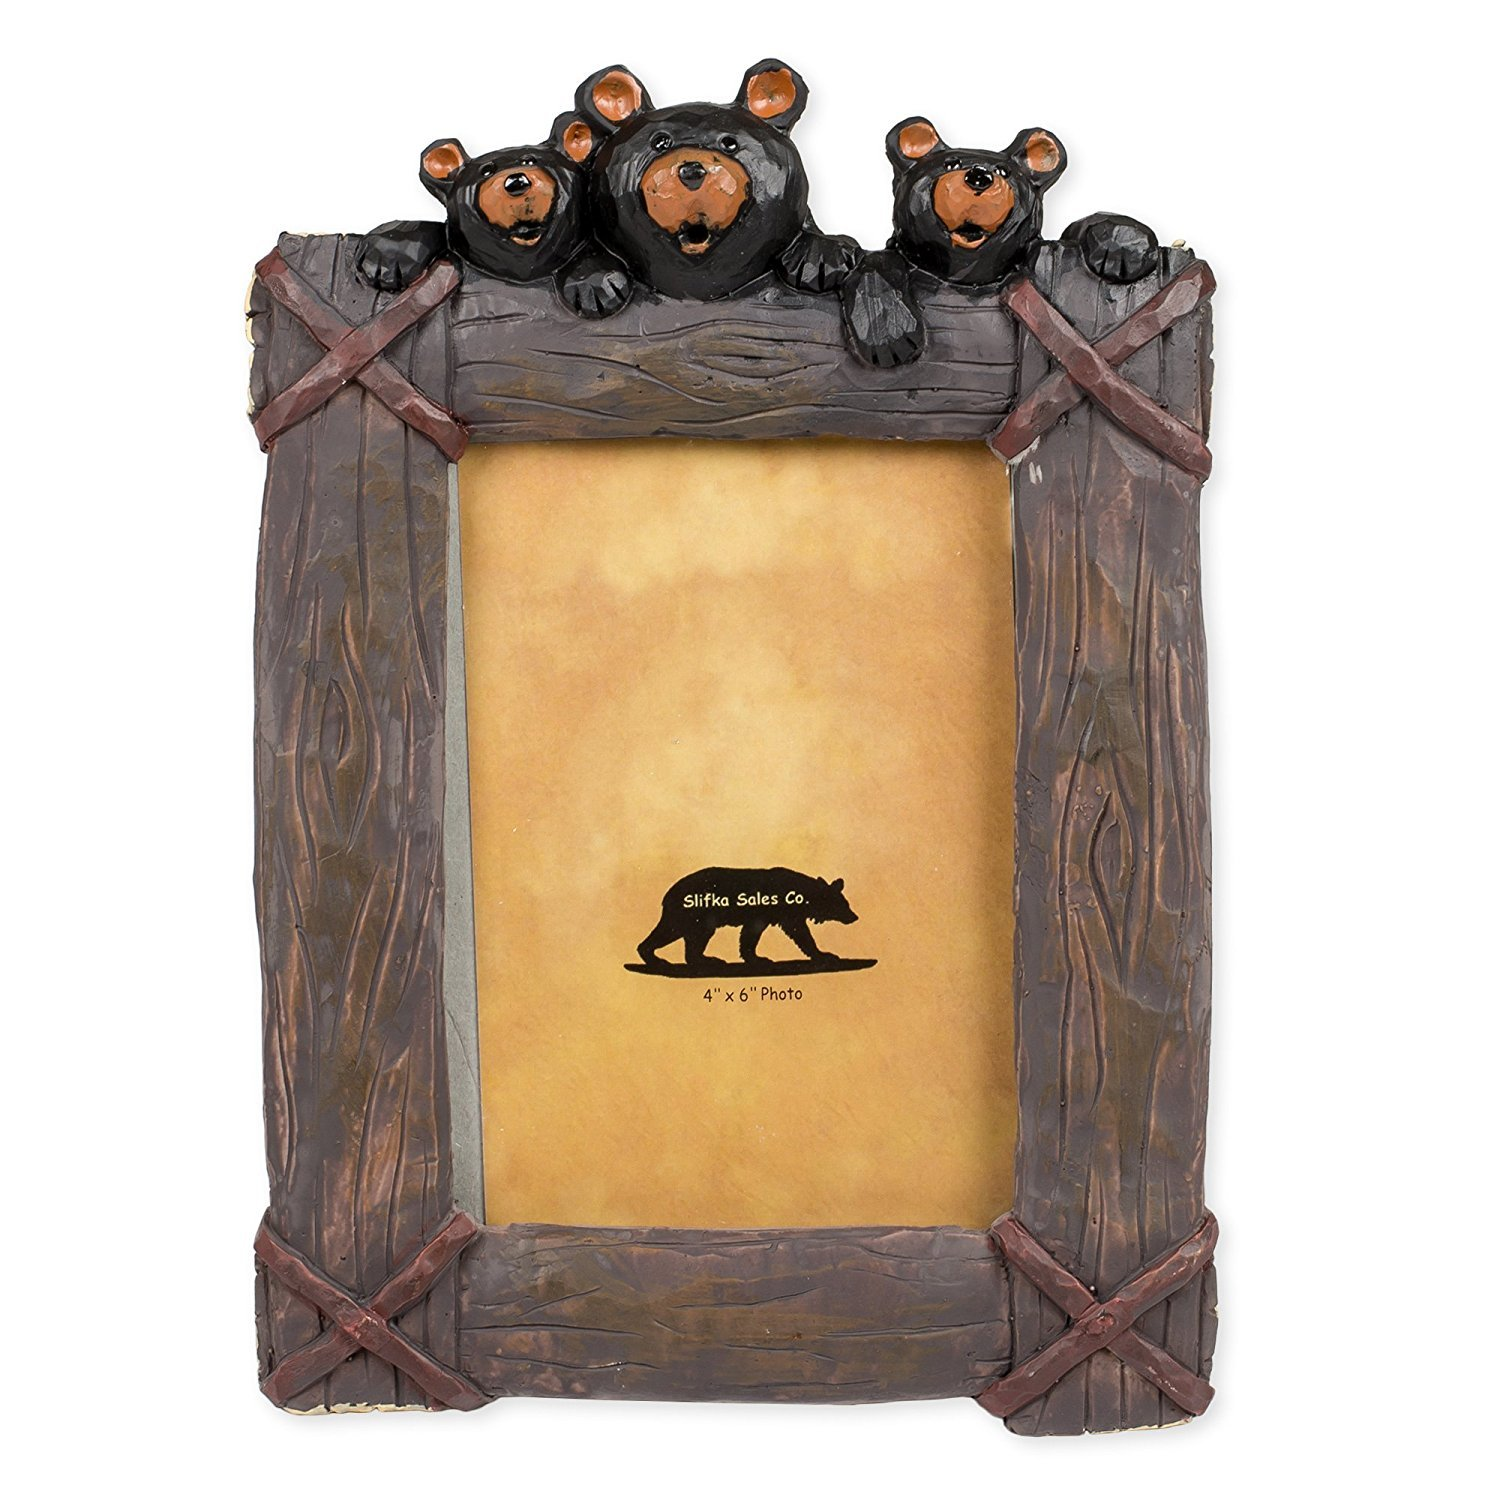 Black Bear Trio 8 x 2 x 10.5 Inch Resin Crafted Tabletop 4x6 Picture Frame by Slifka Sales Co.